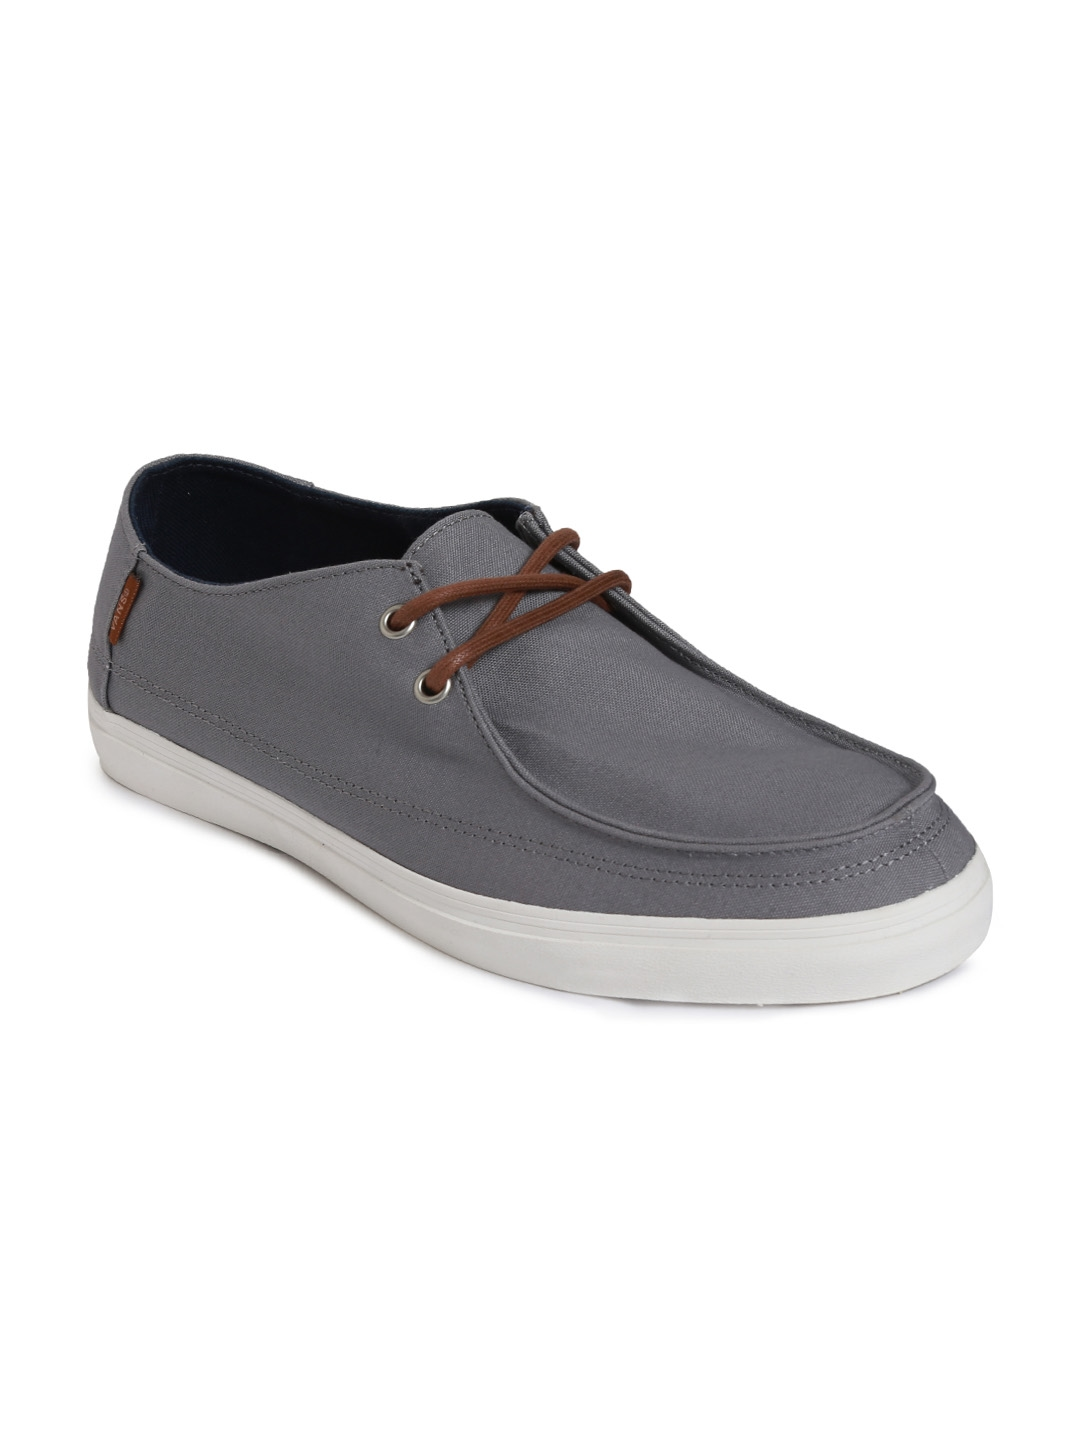 Buy Vans Unisex Grey Rata Vulc SF Sneakers - Casual Shoes for Unisex ... 060a7c20b1